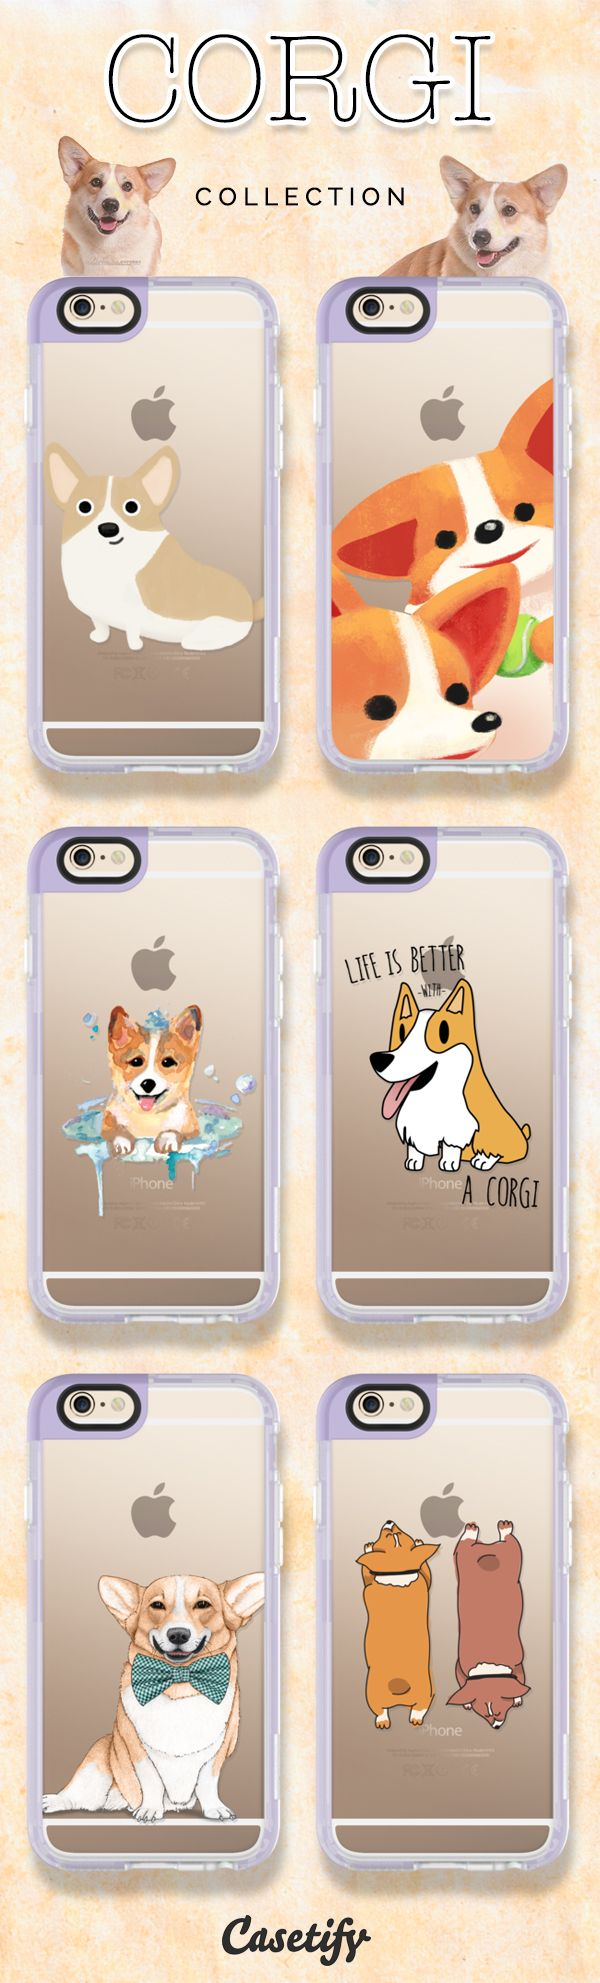 All you need is love and a corgi! Shop these cases featuring corgis here: https://www.casetify.com/artworks/mmbrqv6E4s | @casetify